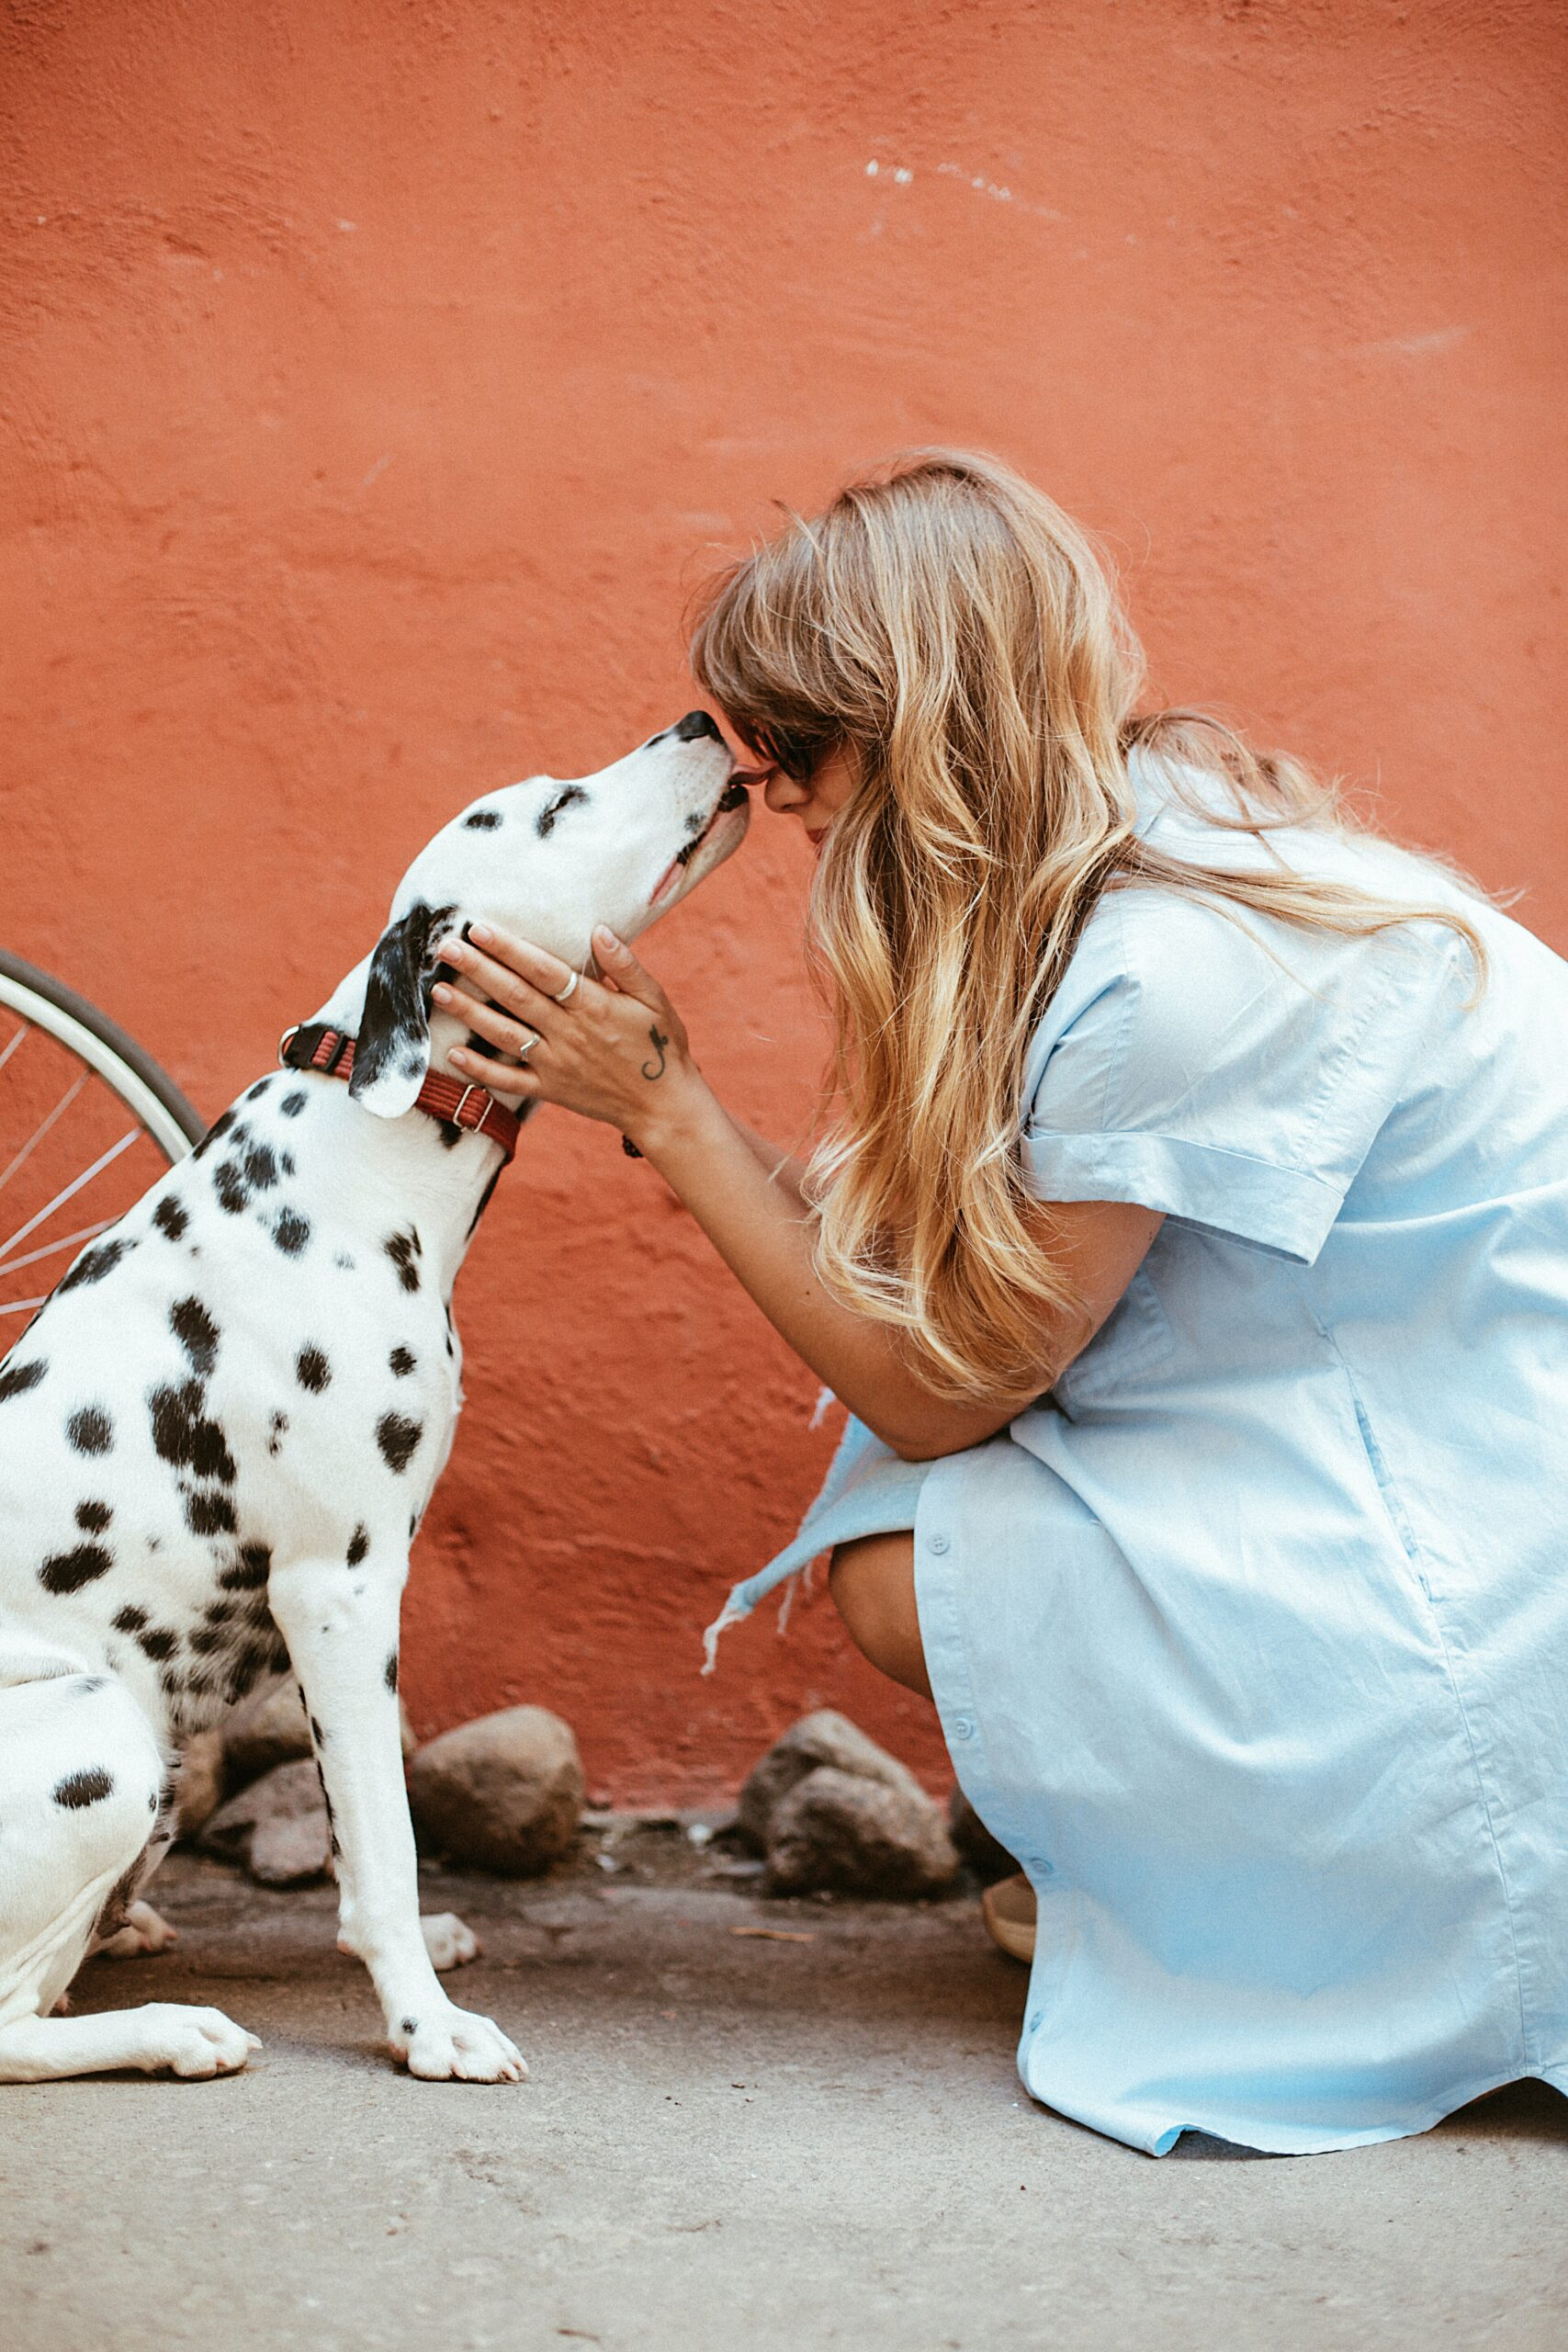 Lady with dalmation